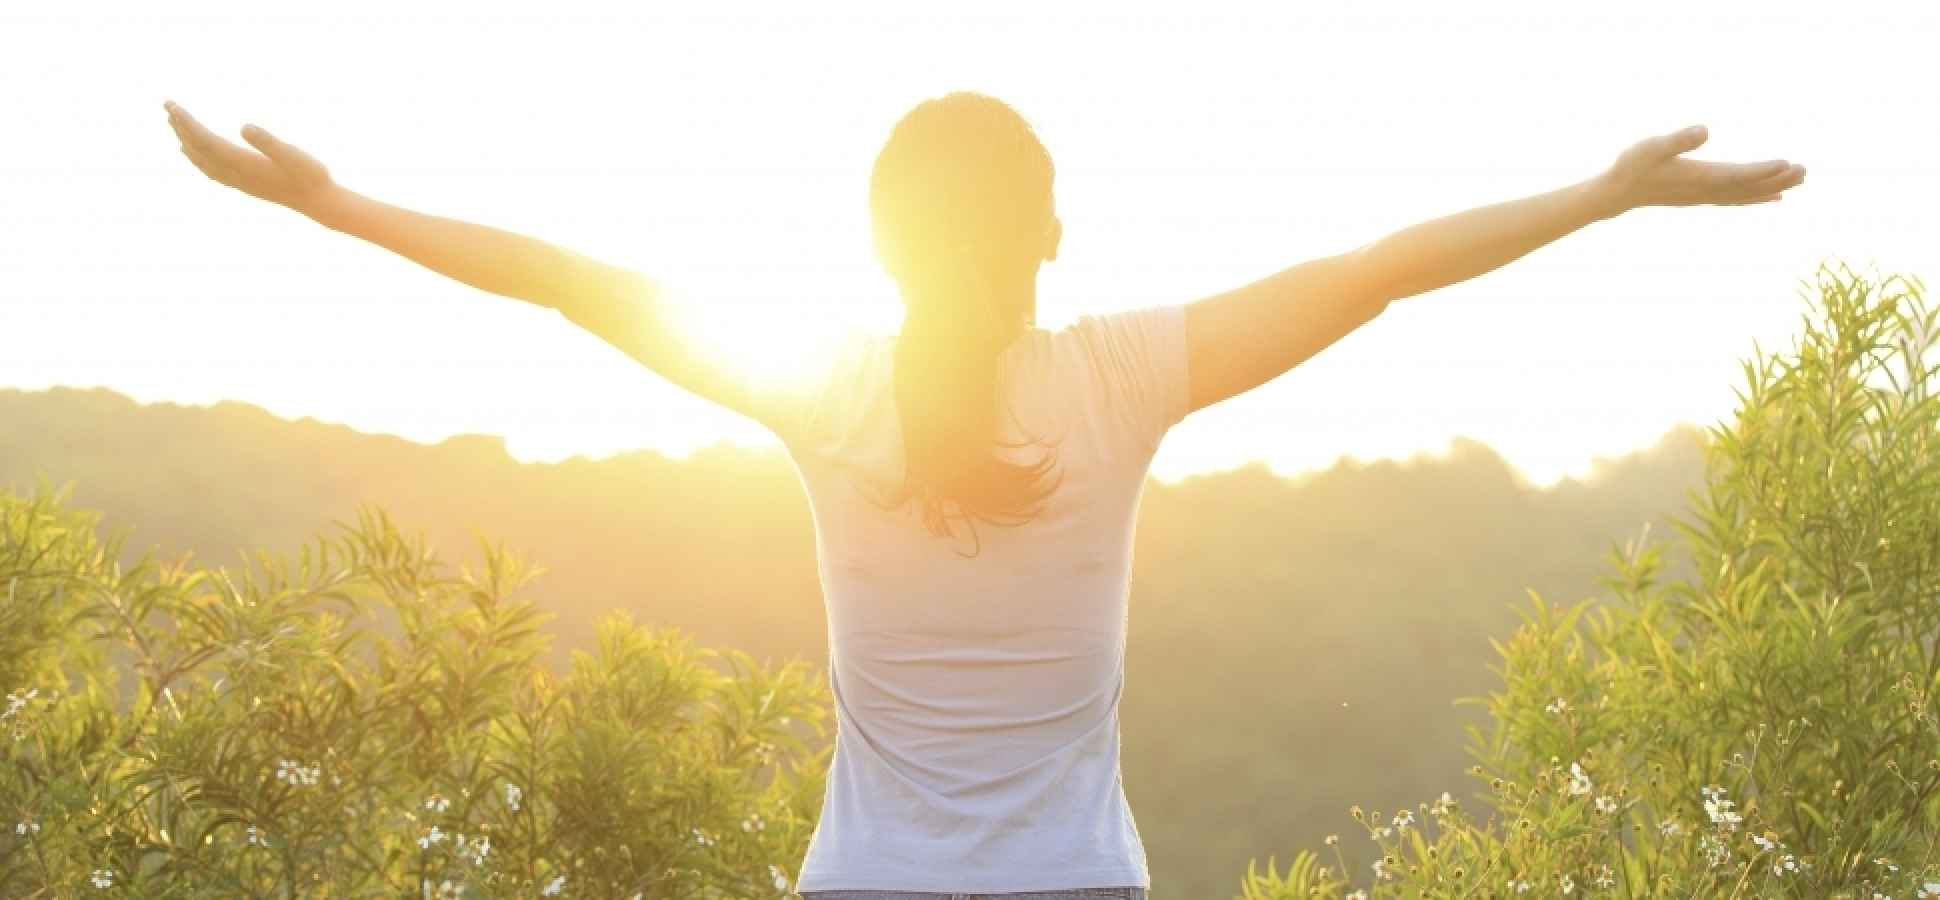 10 Daily Habits of the Happiest People You Know